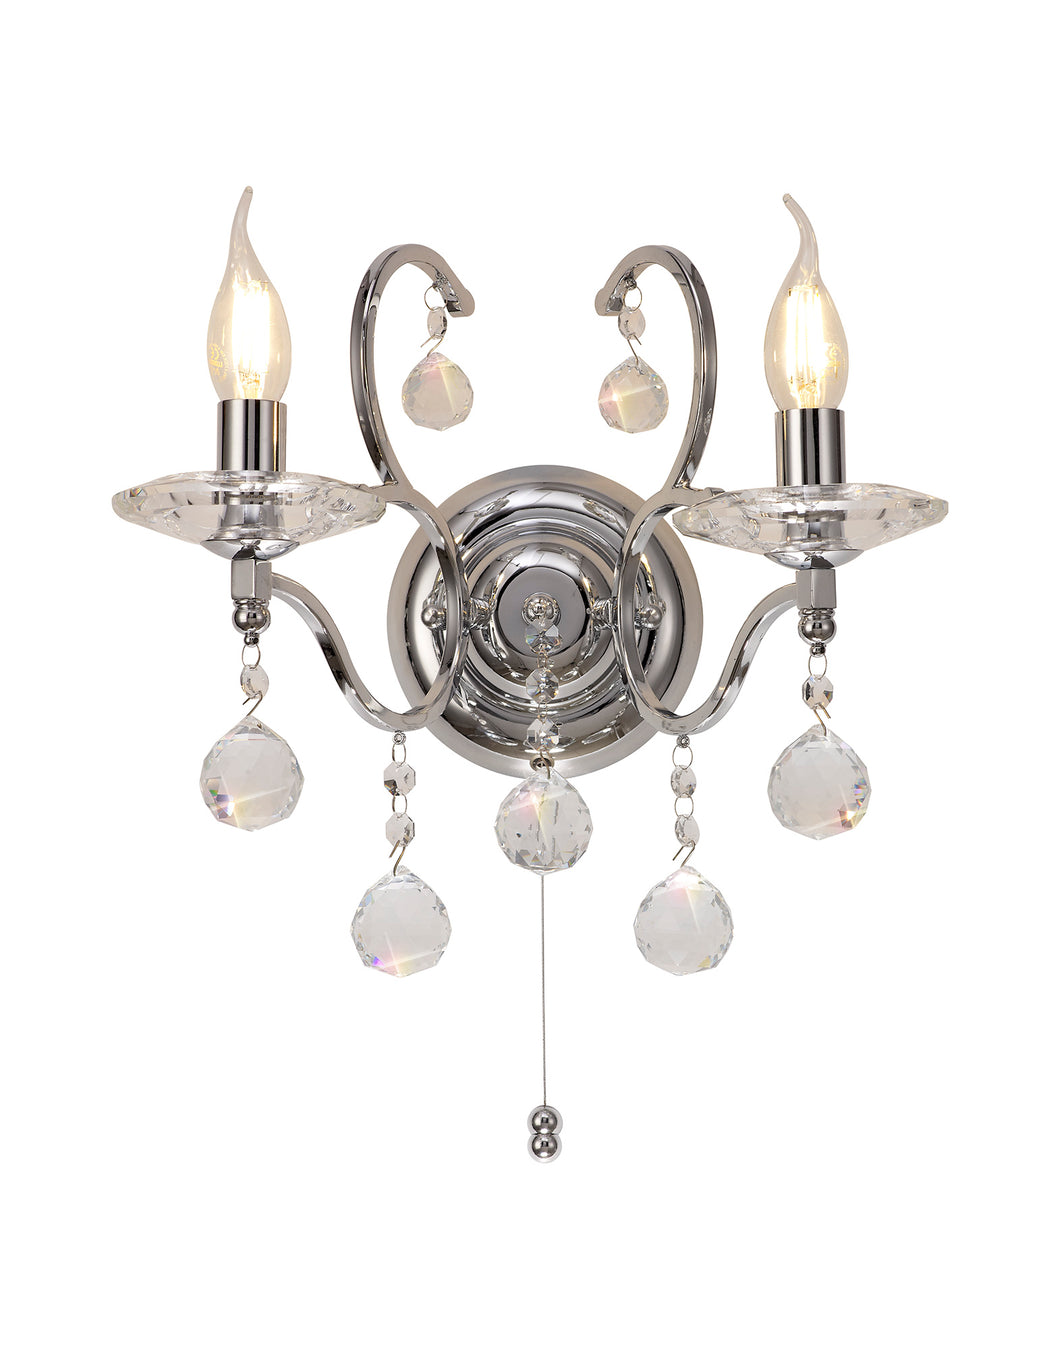 Gemini Double Wall Light